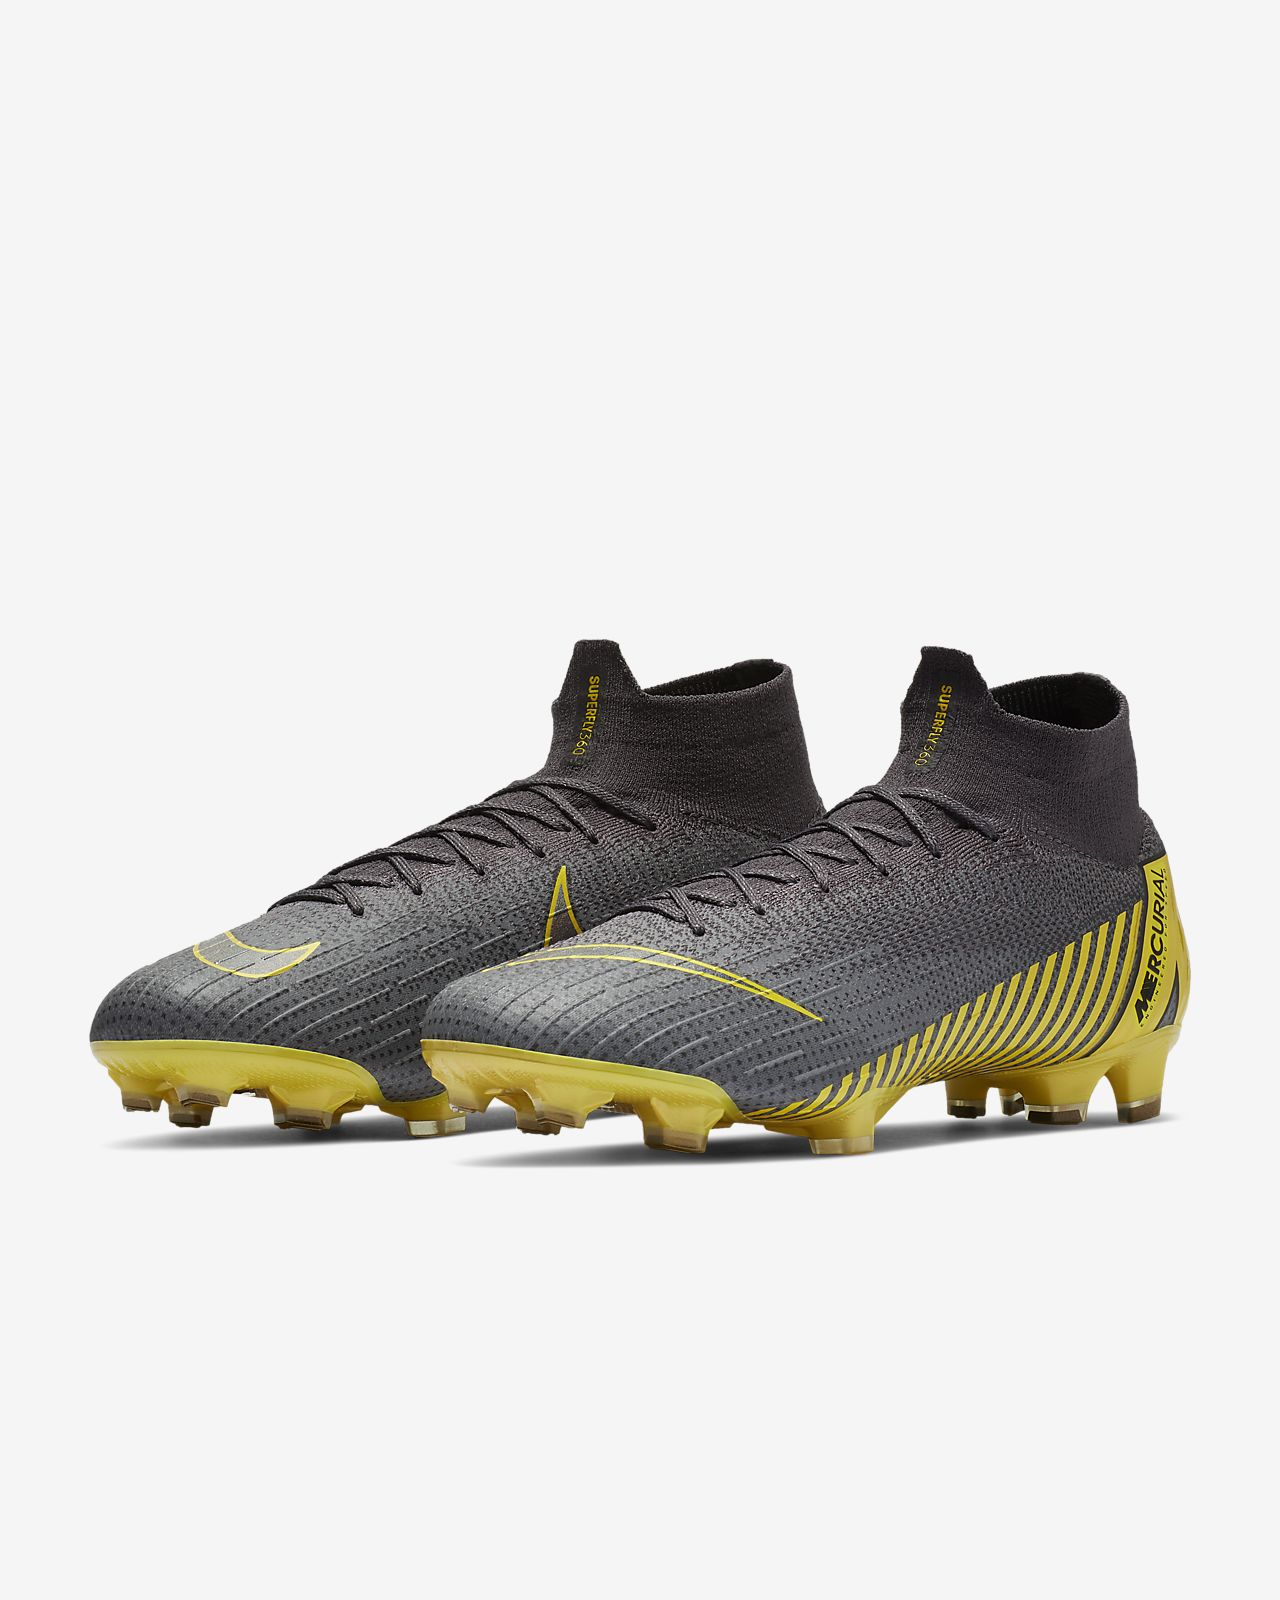 8424db0737a55 Nike Superfly 6 Elite FG Game Over Firm-Ground Football Boot. Nike ...